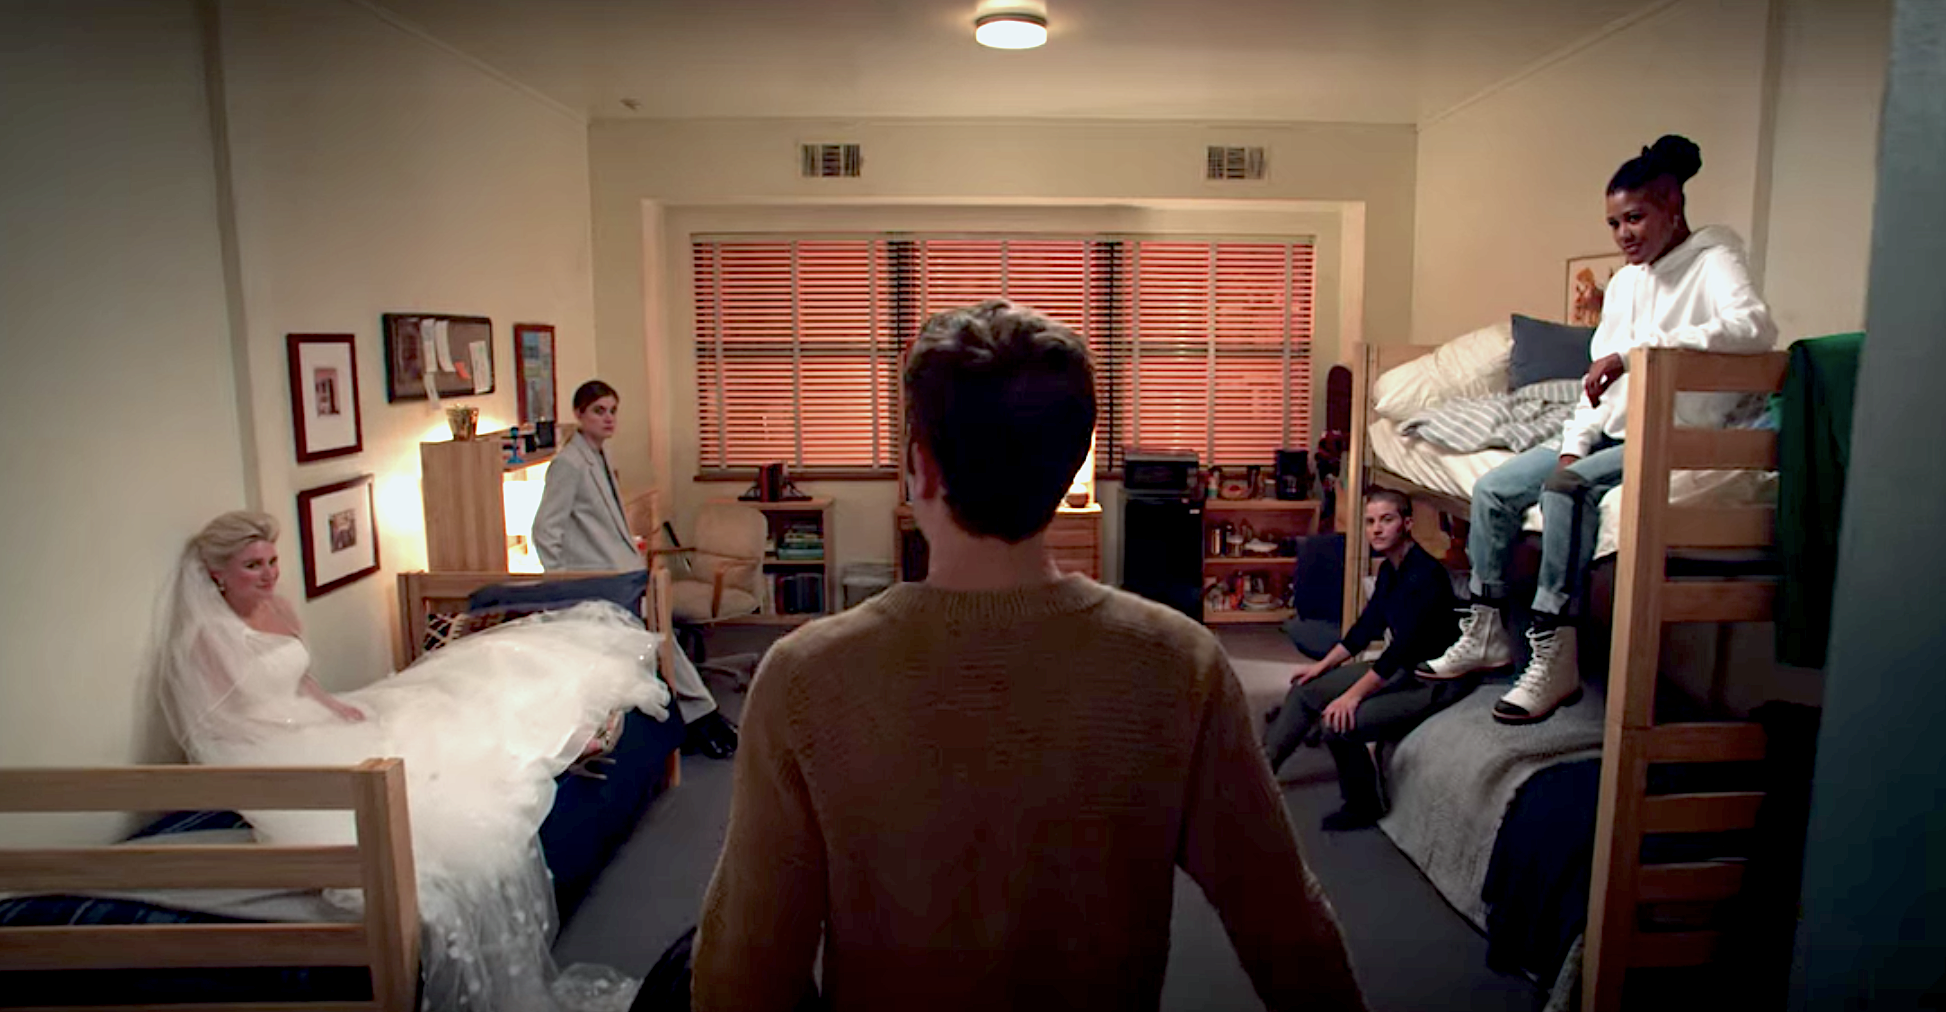 A still from The Politician showing Payton from behind walking into his dorm room and several characters sitting and waiting for him including Macafee, James, Sky, and Alice in a wedding dress